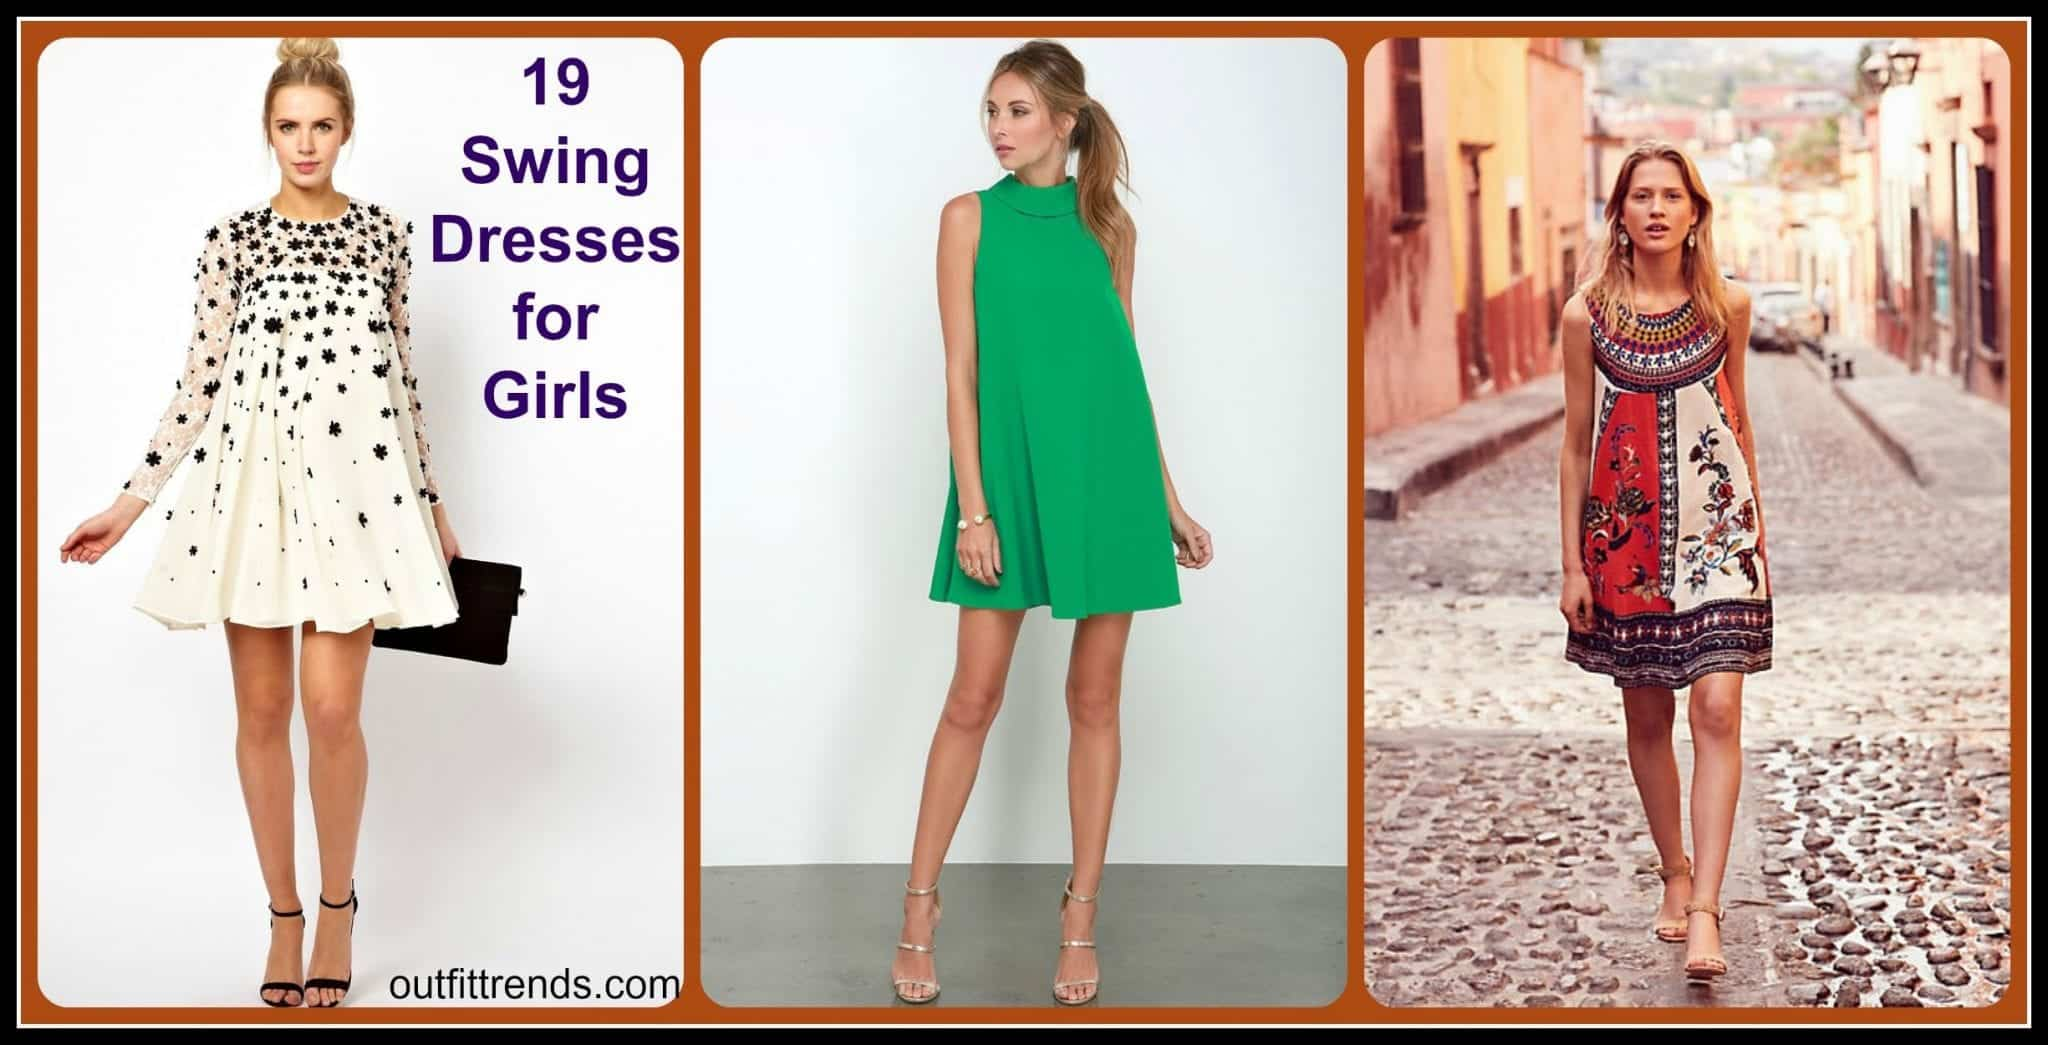 How To Wear A Swing Dress This Summer-19 Outfit Ideas